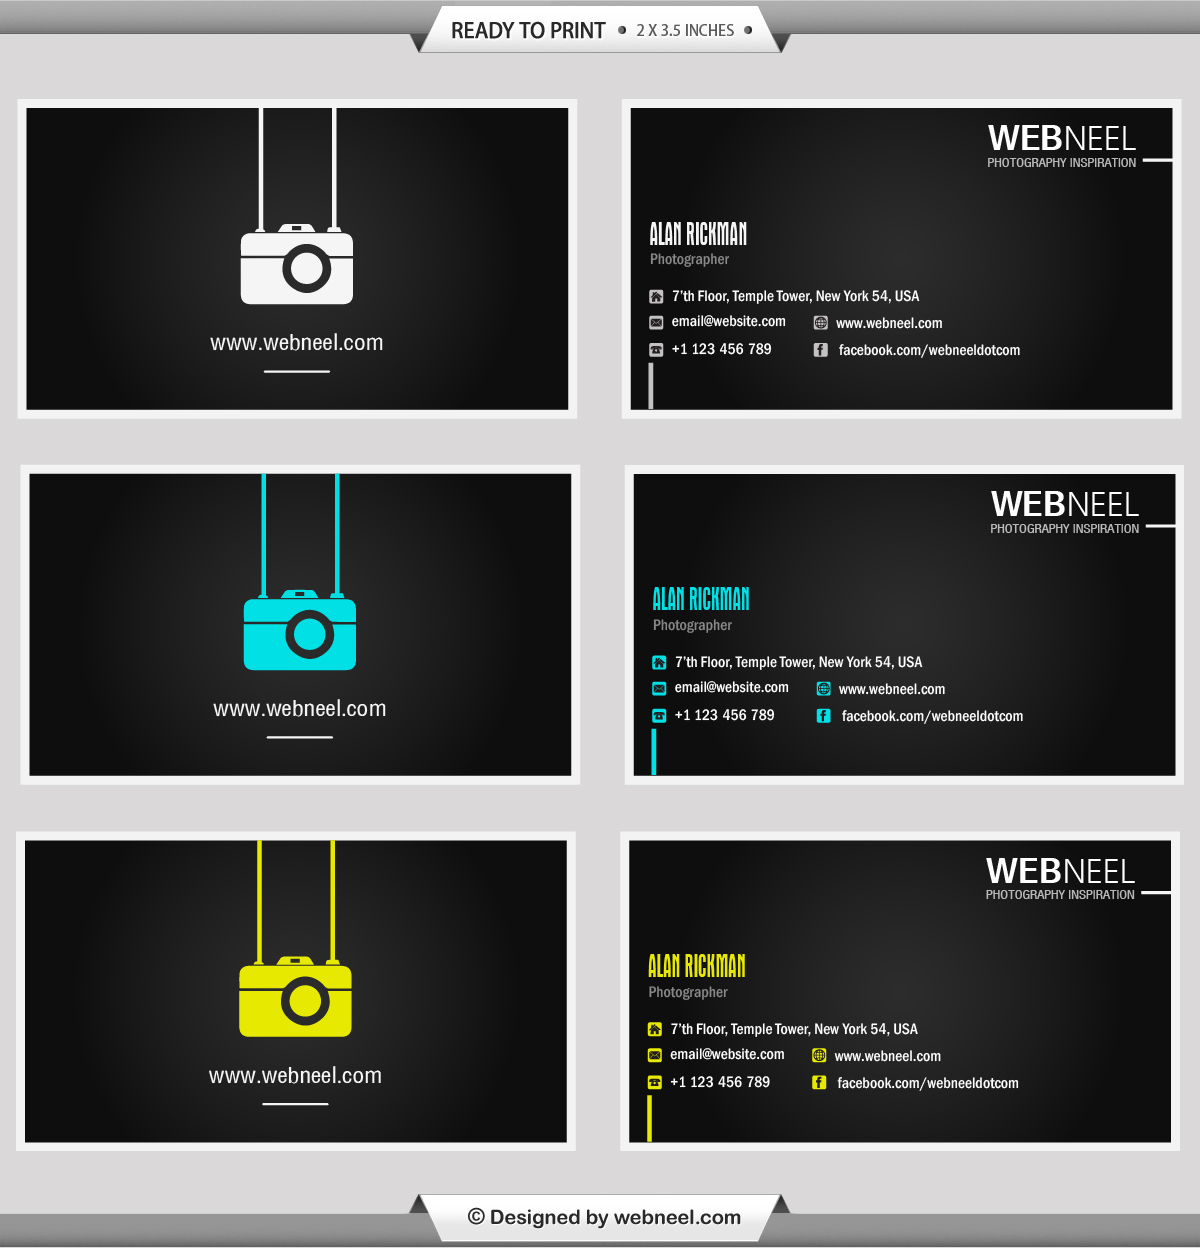 Photography Business Card Design template 41 - Freedownload Printing ...